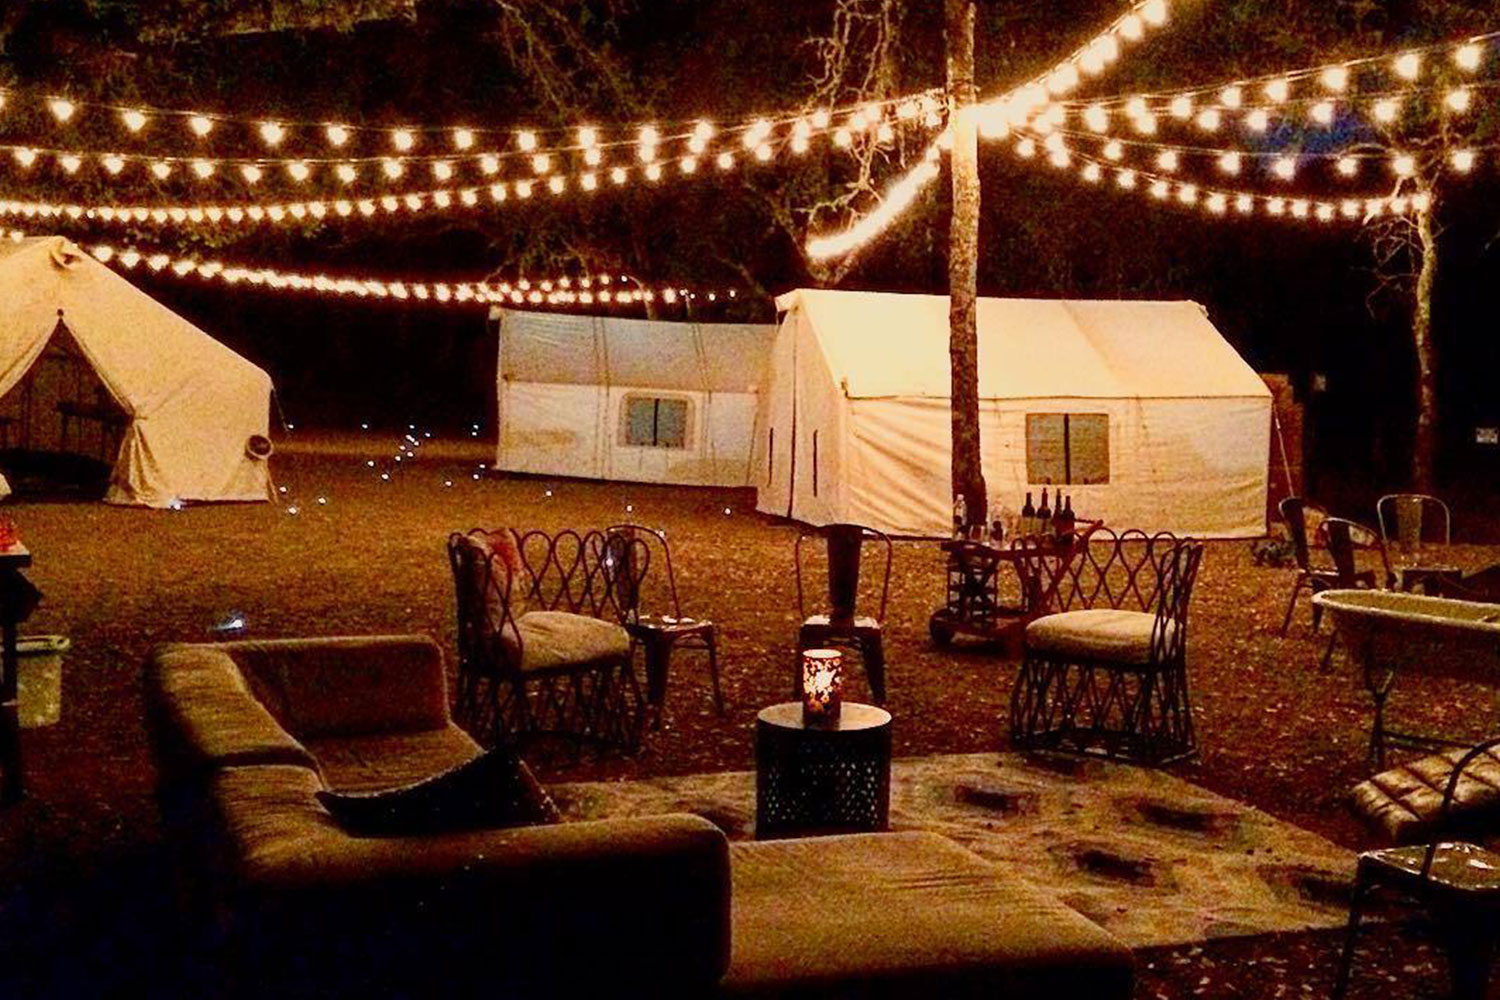 Cozy seating area at Fort Tilden by night, lit by string lights between trees above